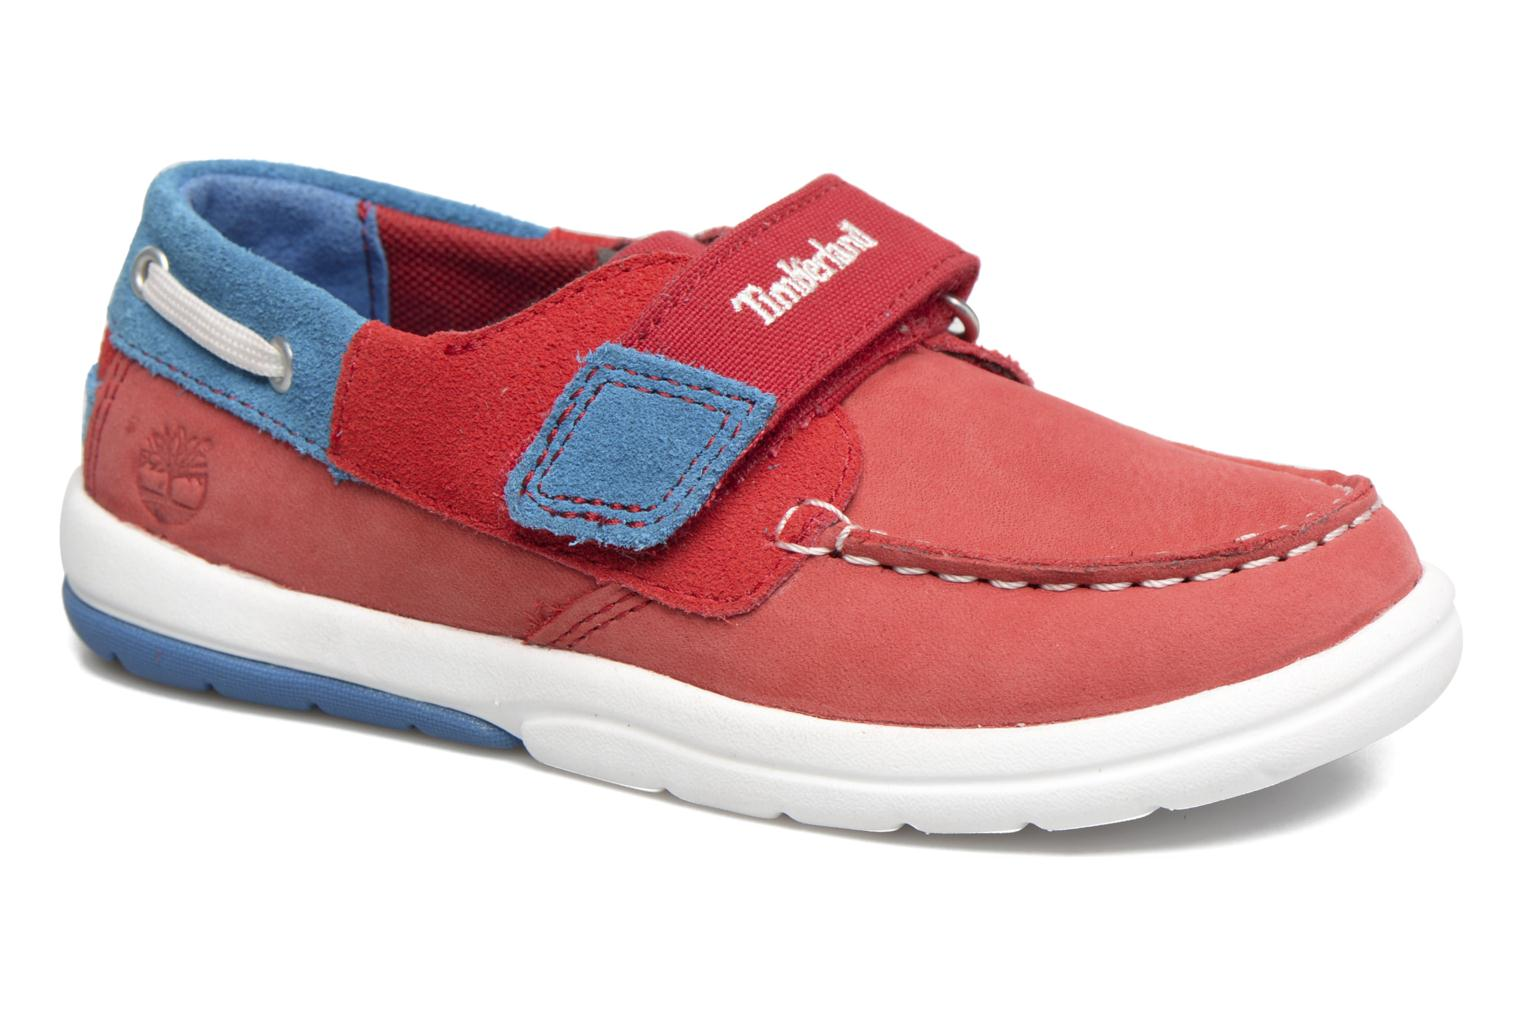 Toddletracks Boat Sh Red